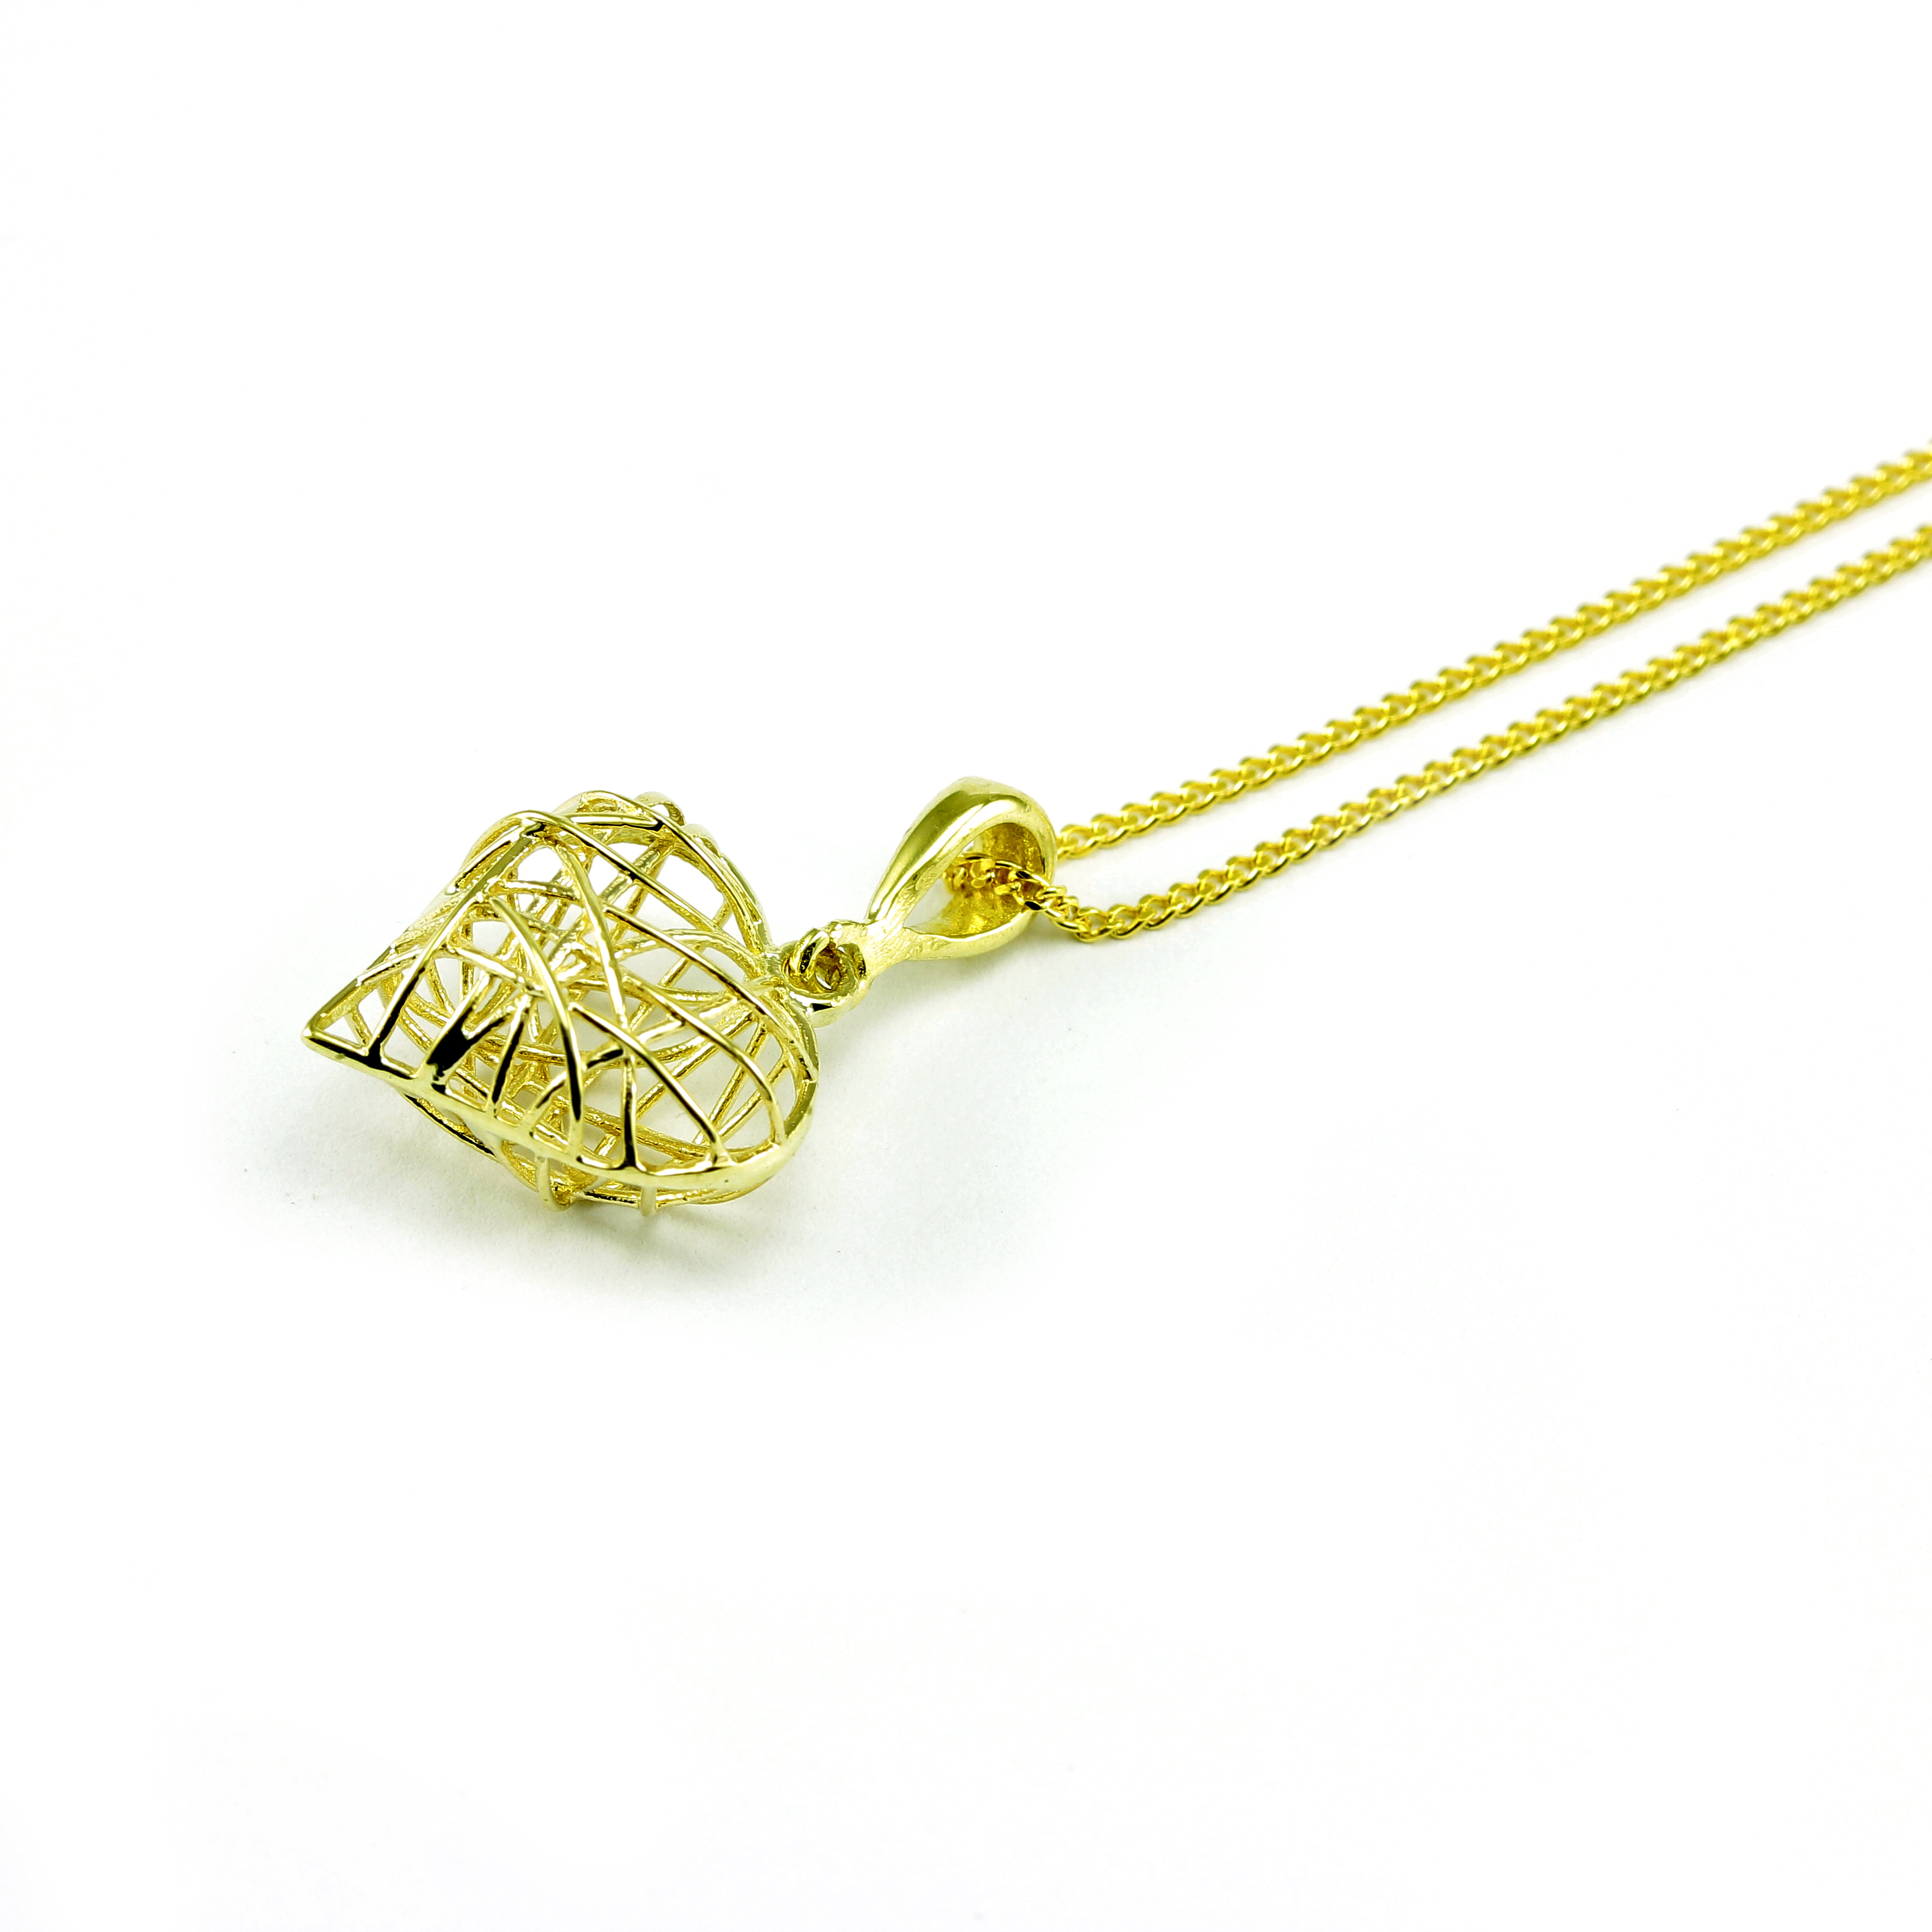 Romantic and graceful; capture her heart and her soul this Valentine's Day with this gorgeous 9ct Yellow Gold Caged Heart Necklace. Cage her heart and make her yours with the gift of this beautiful necklace. £135